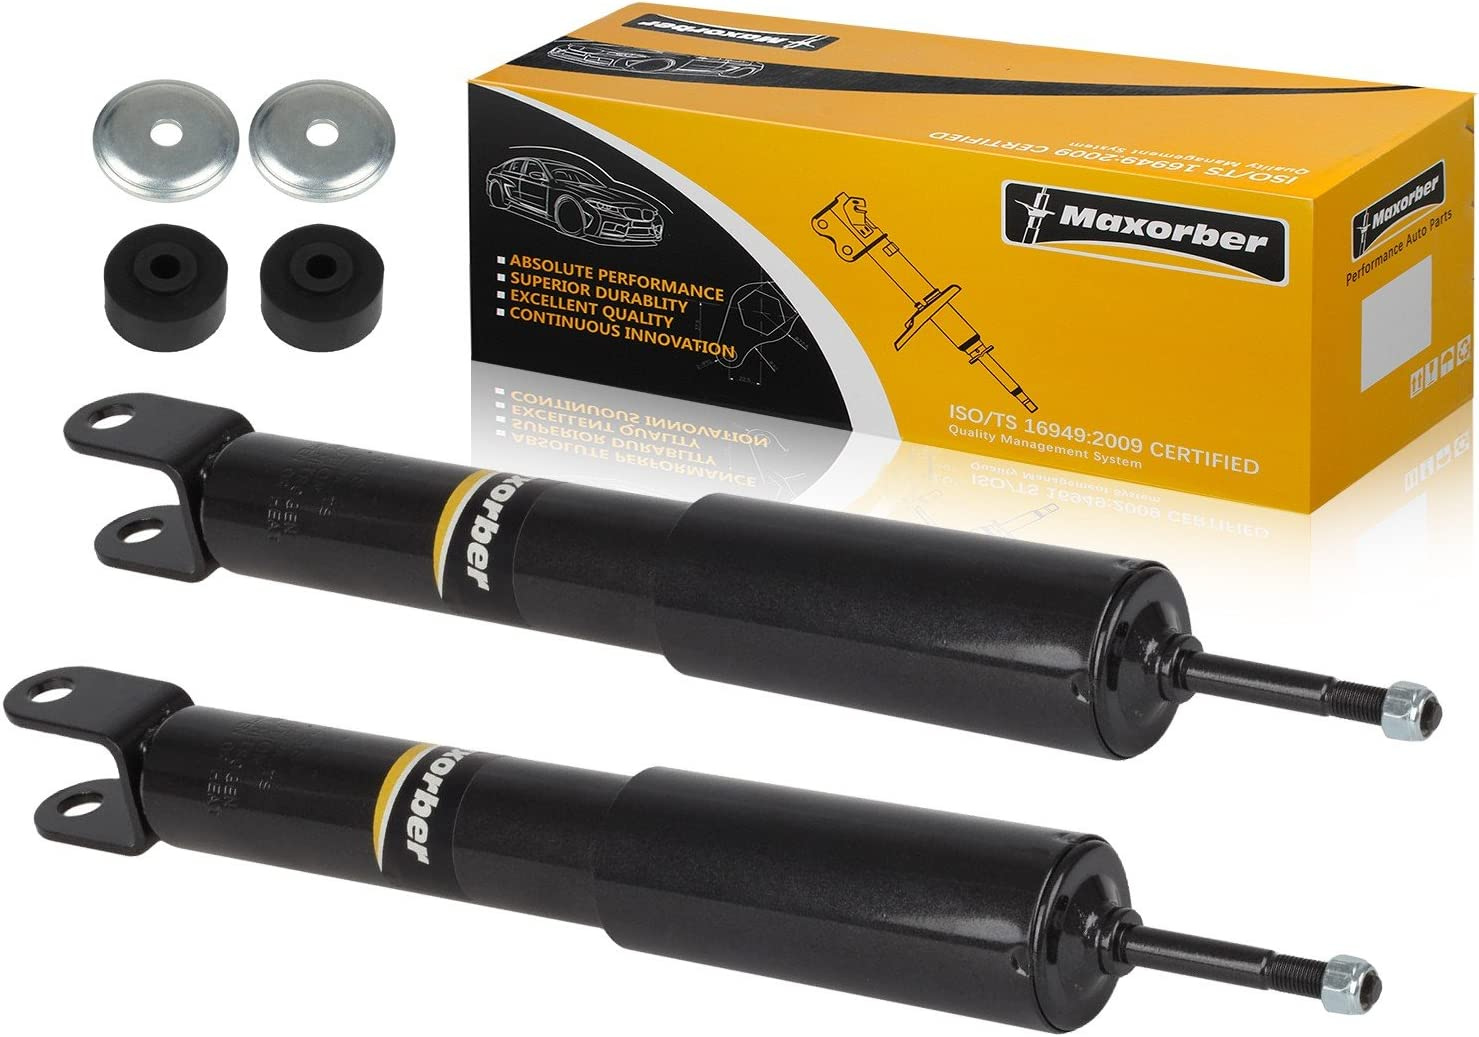 Bilstein B4 Rear axle Shock absorbers Dampers 19-214276 fits MITSUBISHI L OE Rep